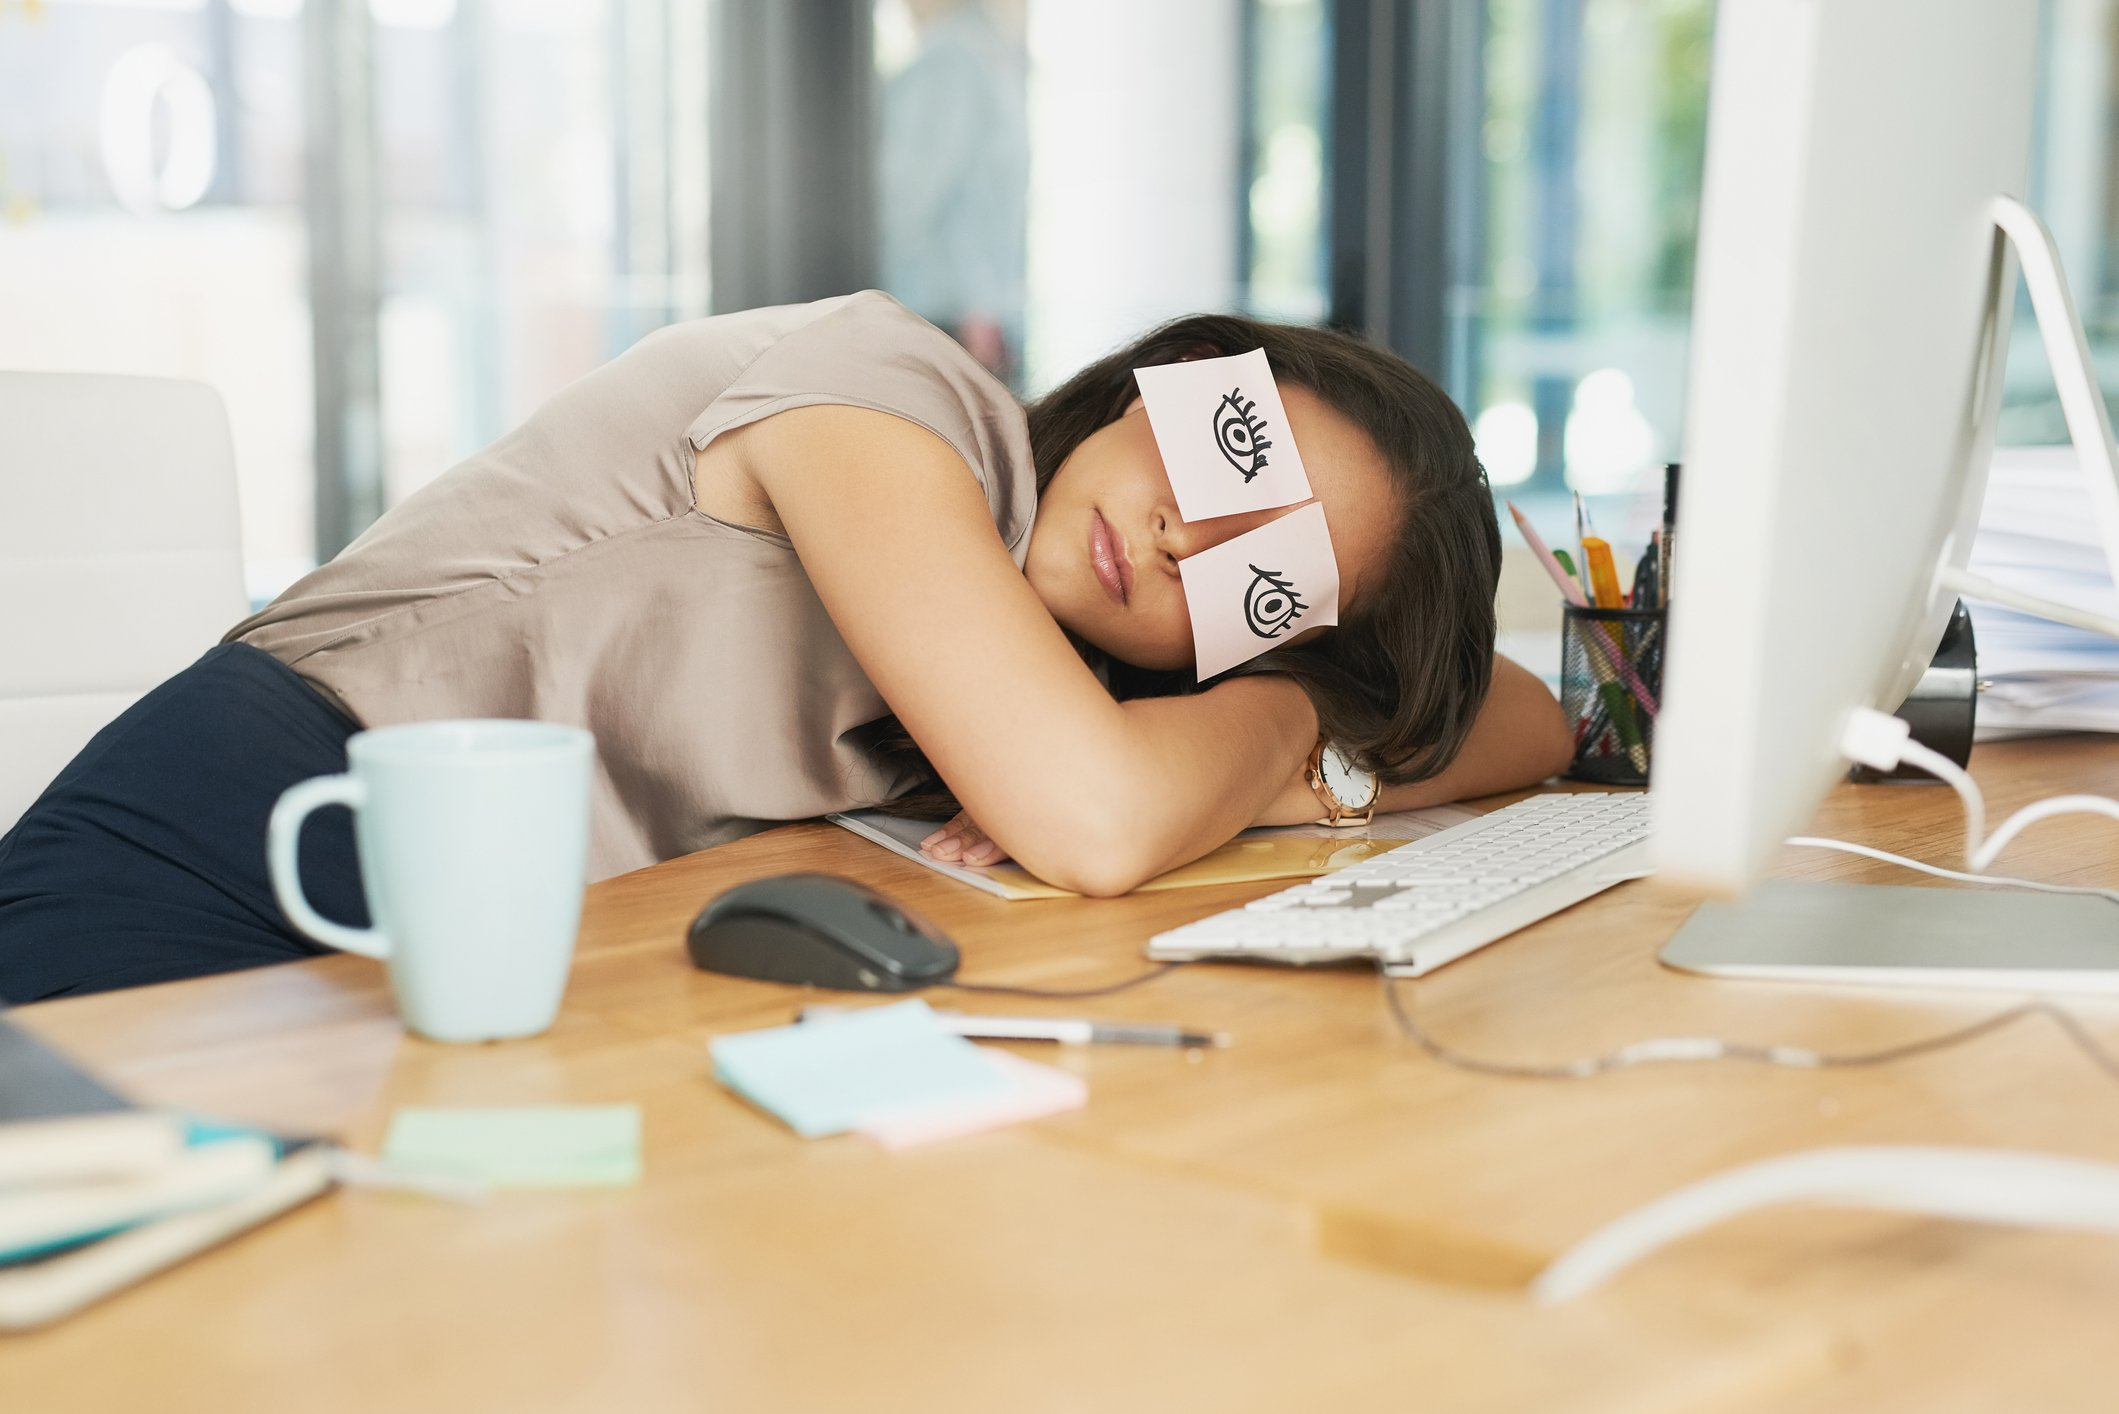 Don't Snooze on these Sleep Industry Trends: Why Sleep Could Be the Next Mindfulness Revolution